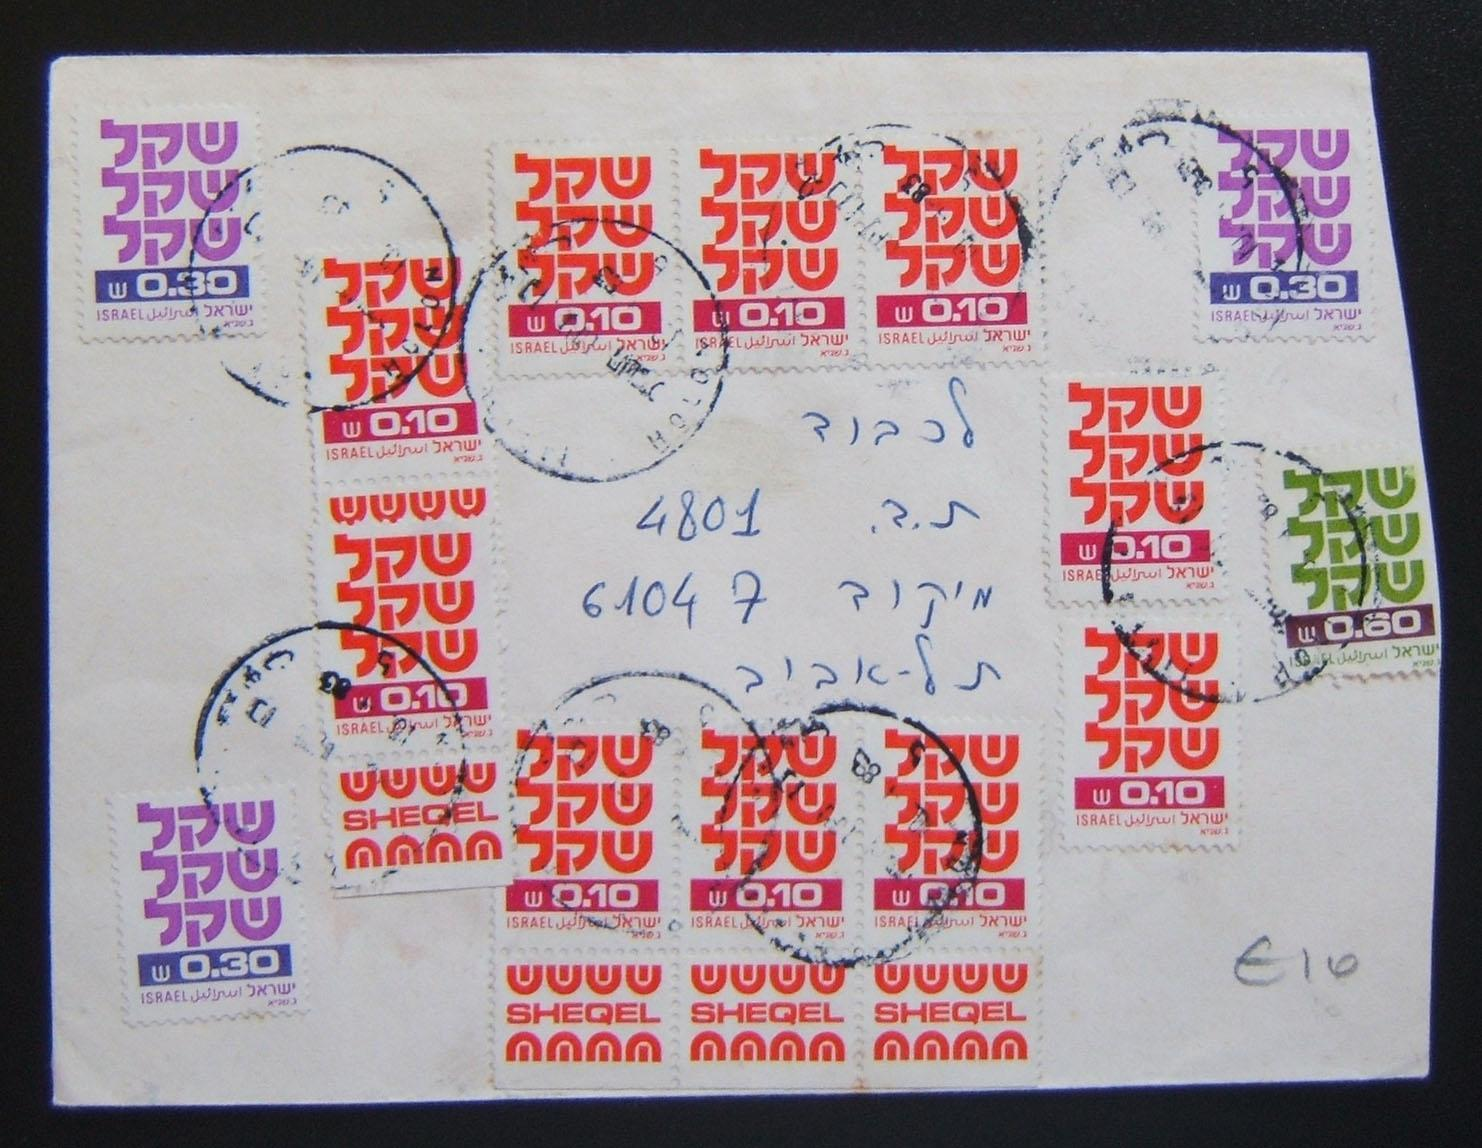 1983 Shekel inflation cover: 10-4-1983 commercial cover ex HOLON to TLV franked 2.50Sh at the DO-38 period rate (2.20Sh letter rate; avoidable 0.30Sh overcharge - there may discrep